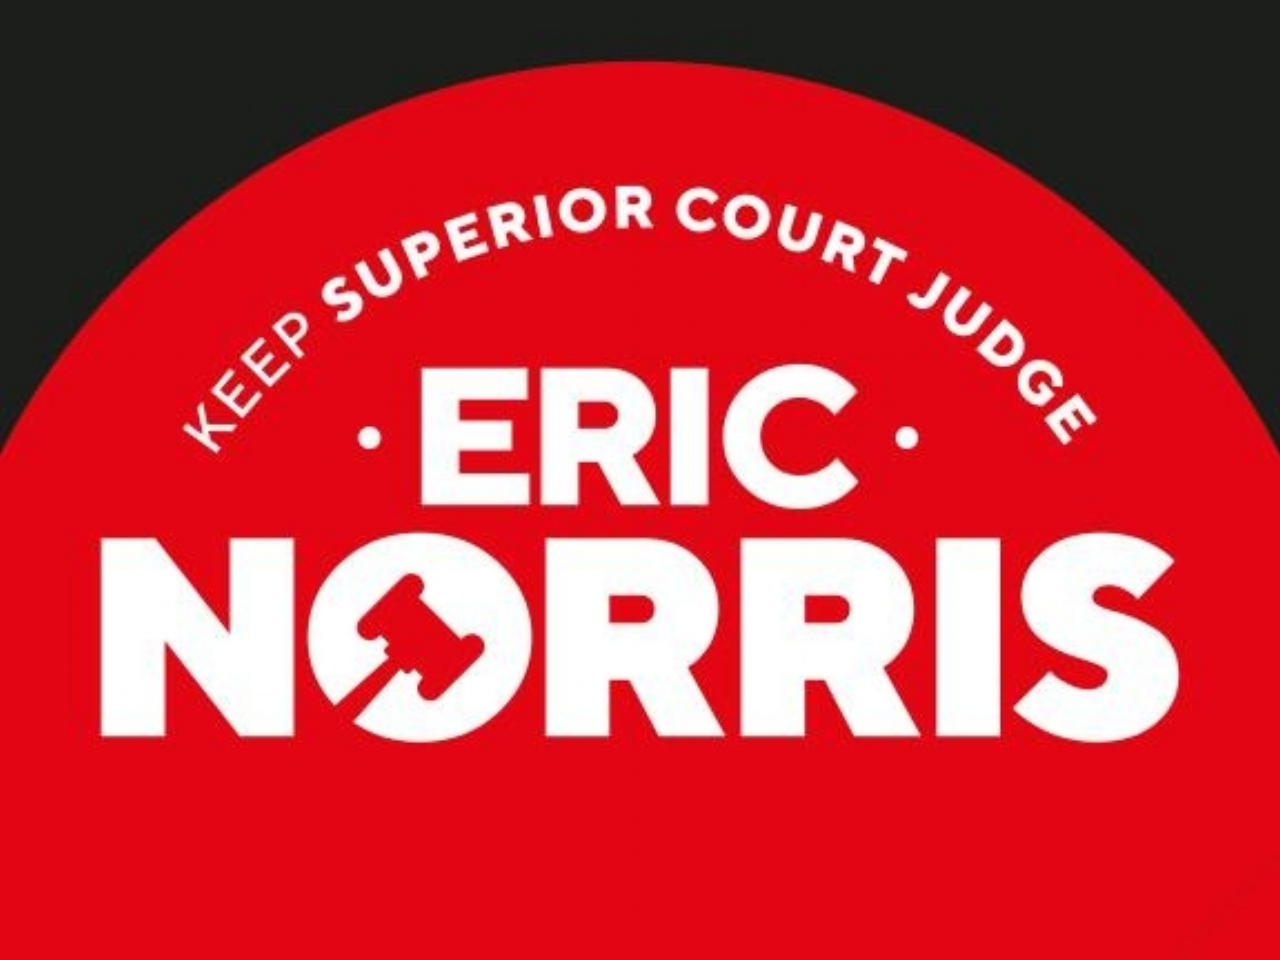 Keep Superior Court Judge Eric Norris